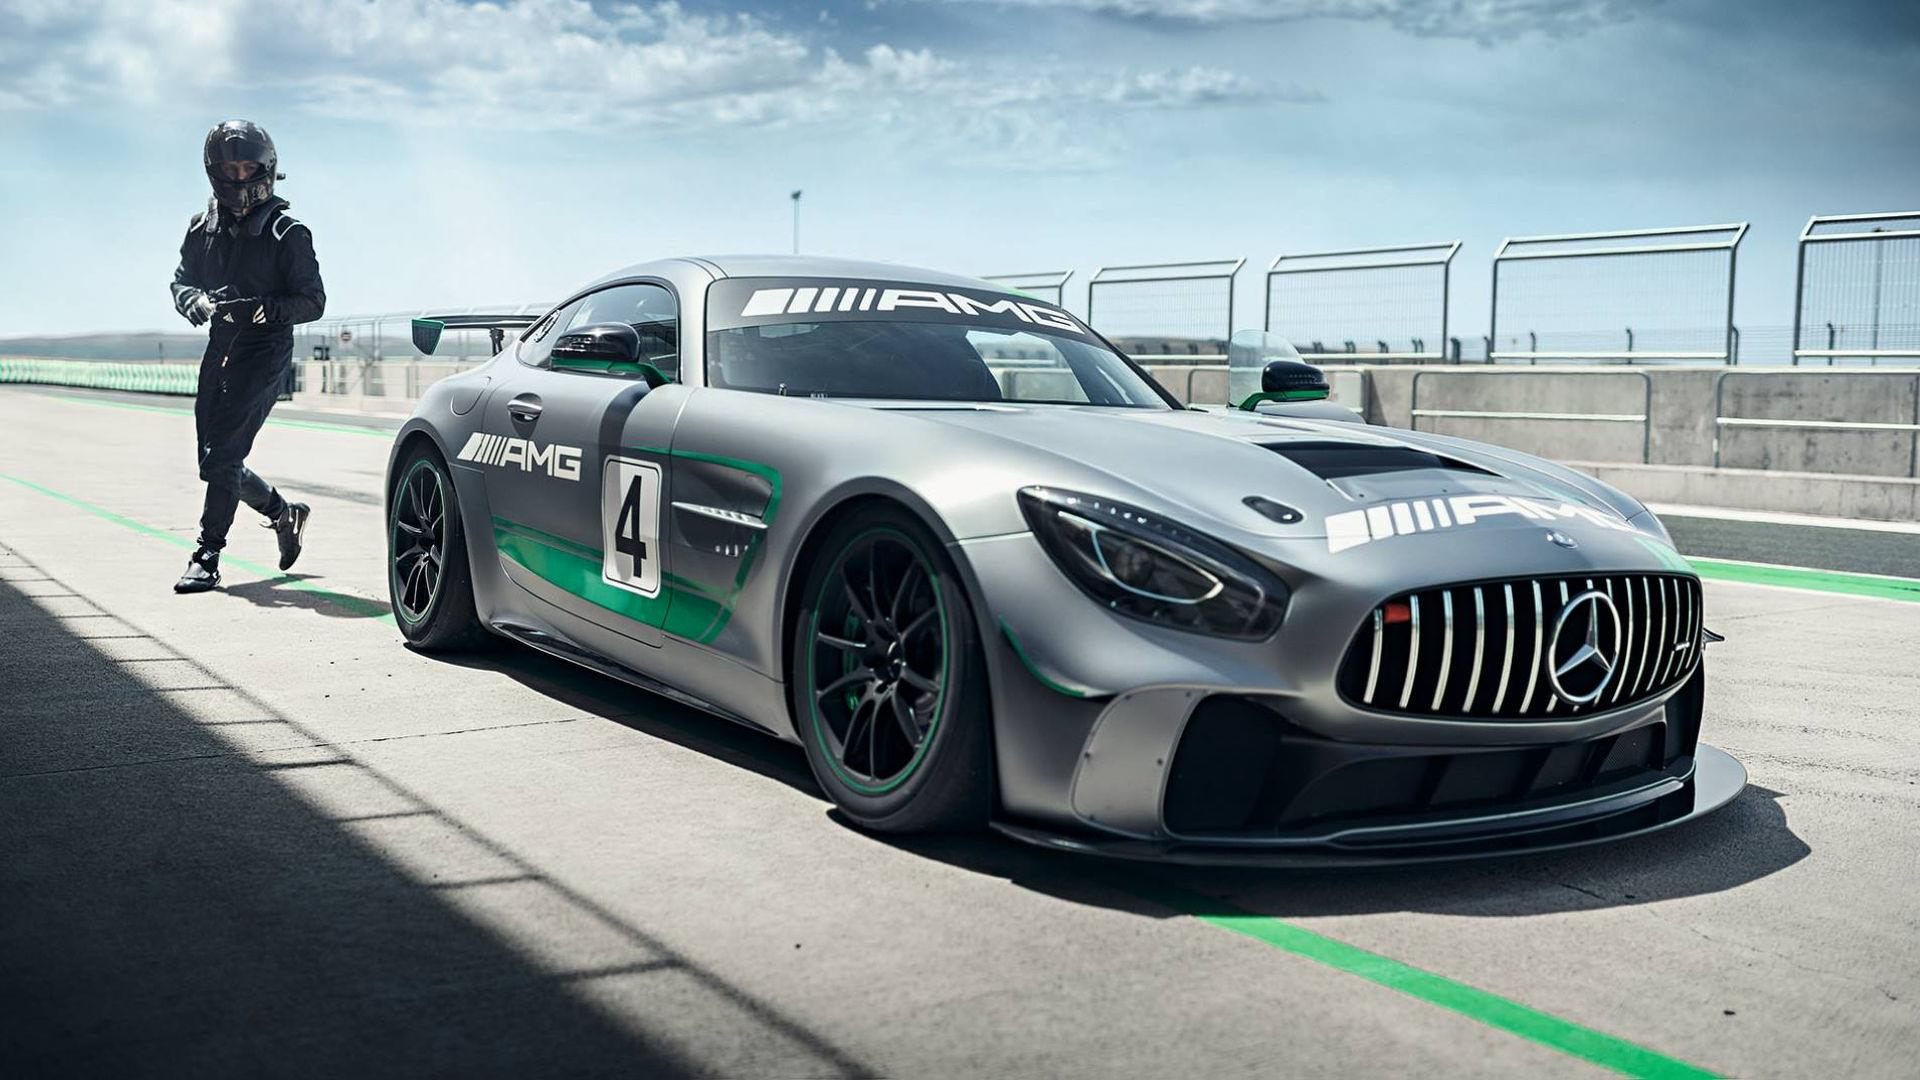 mercedes amg gt4 is one expensive customer racing car autoevolution. Black Bedroom Furniture Sets. Home Design Ideas